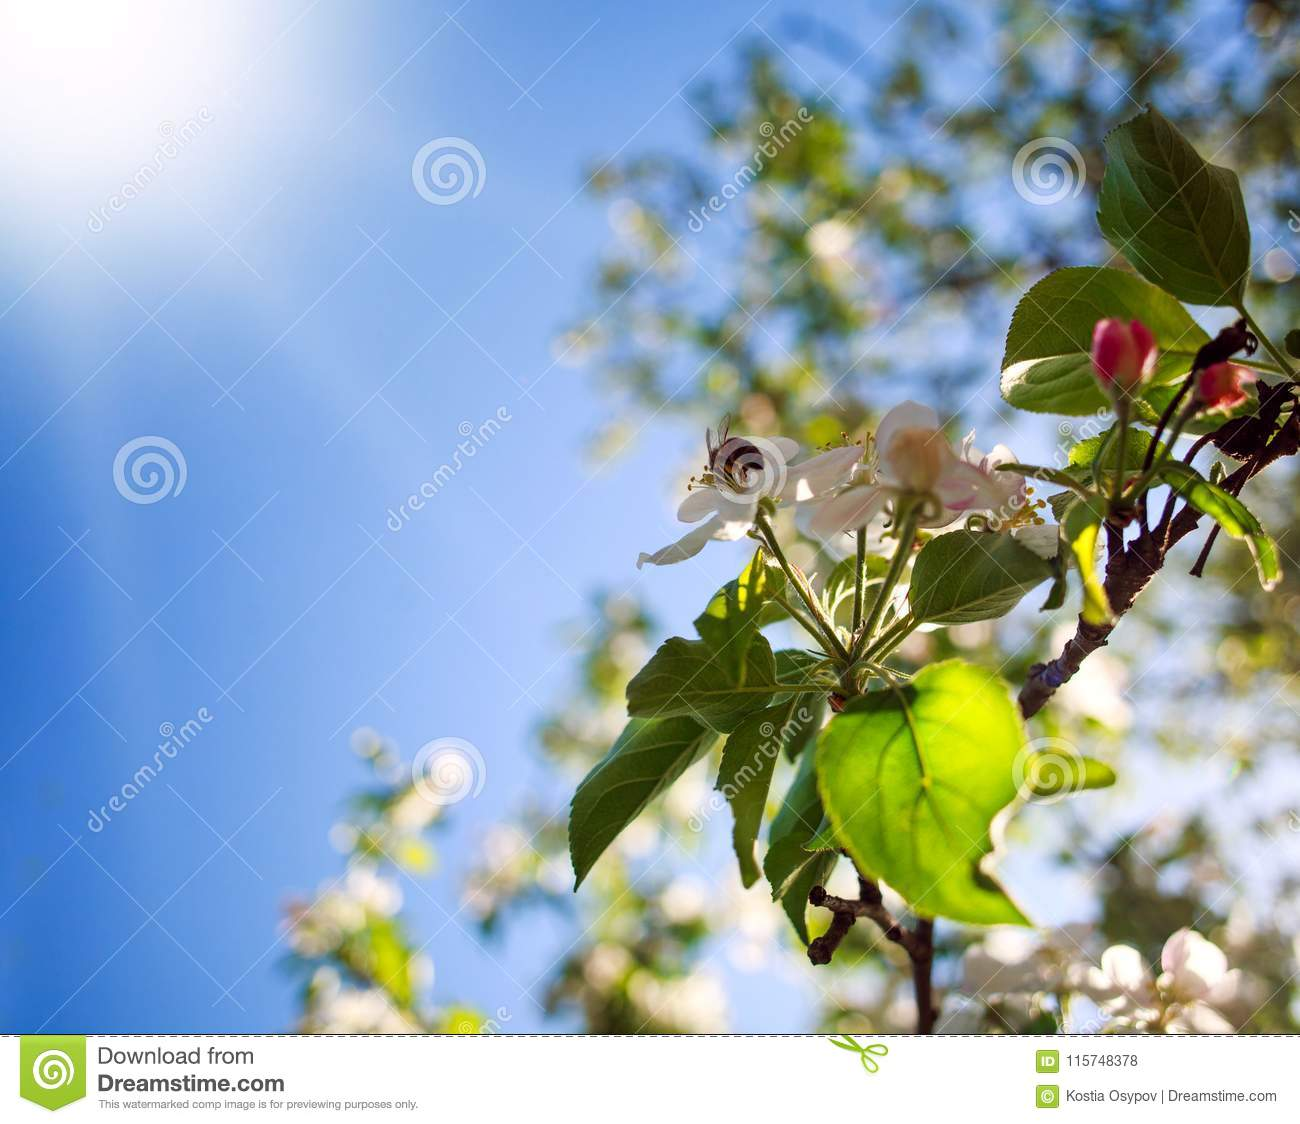 Honey bee in garden collect nectar from flowers of blooming tree